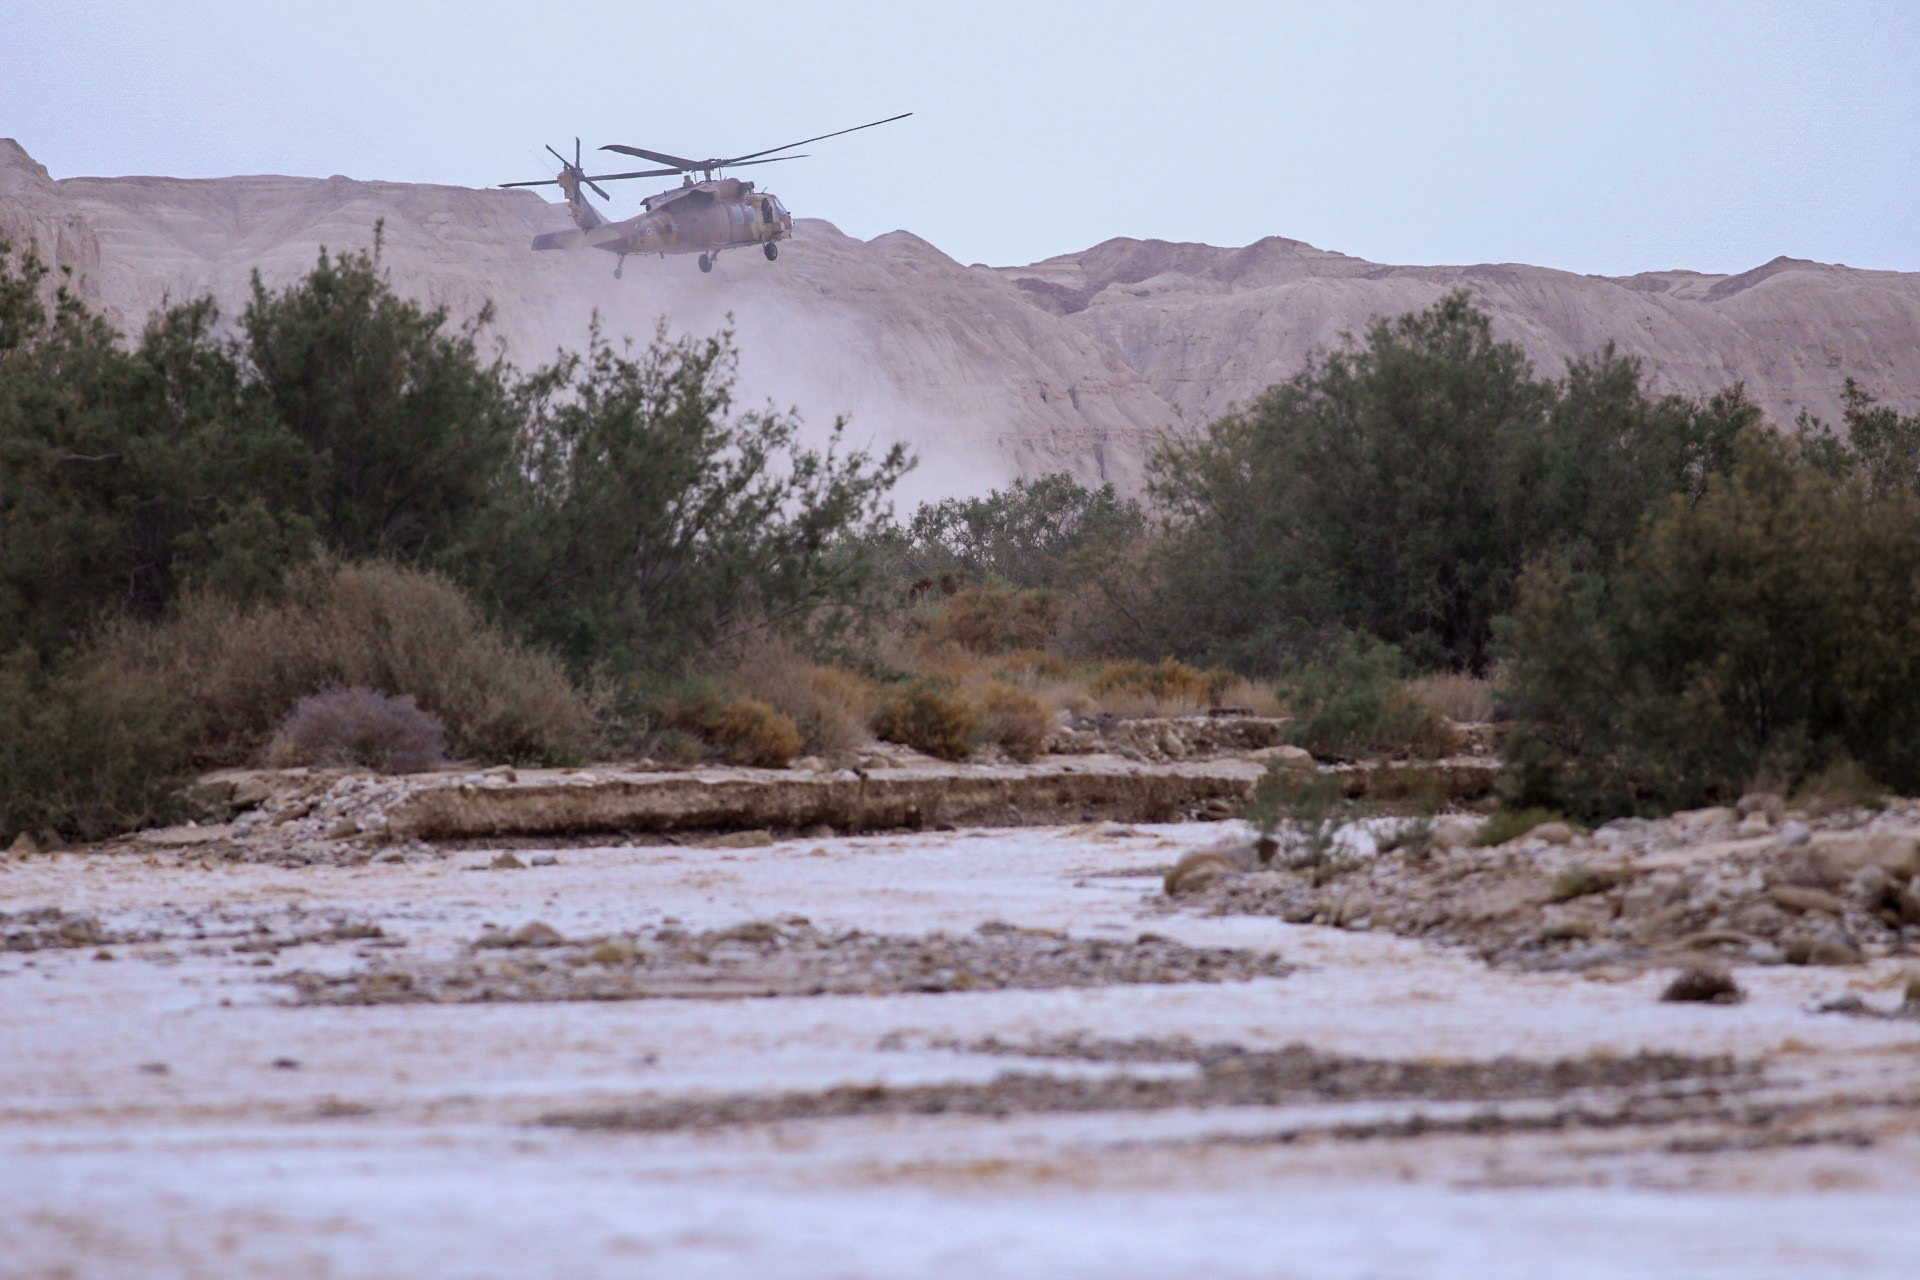 10th Teen Found Dead After Flash Flood in Southern Israel